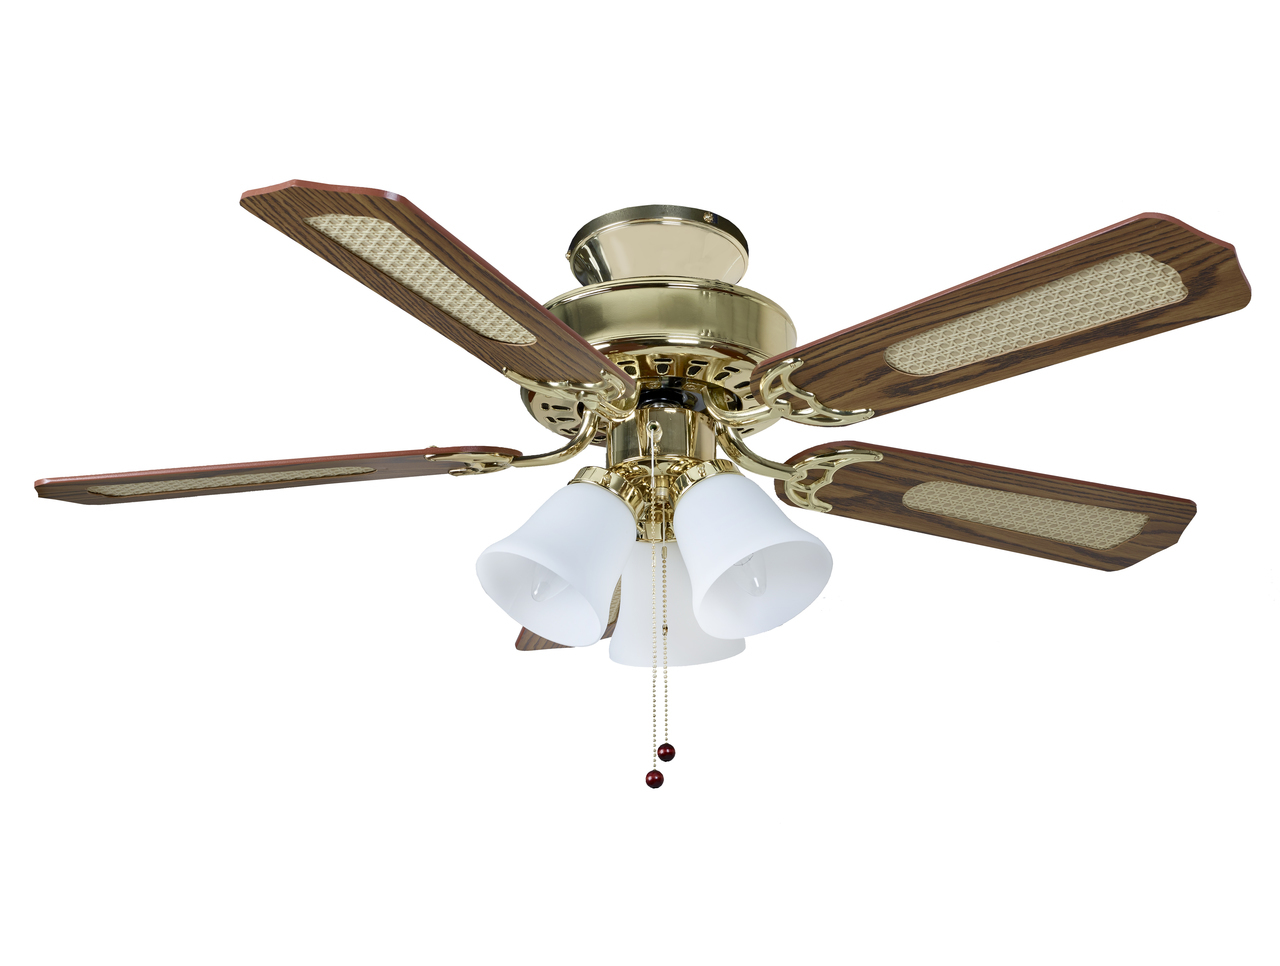 fantasia belaire 42in ceiling fan brass light fantasia. Black Bedroom Furniture Sets. Home Design Ideas